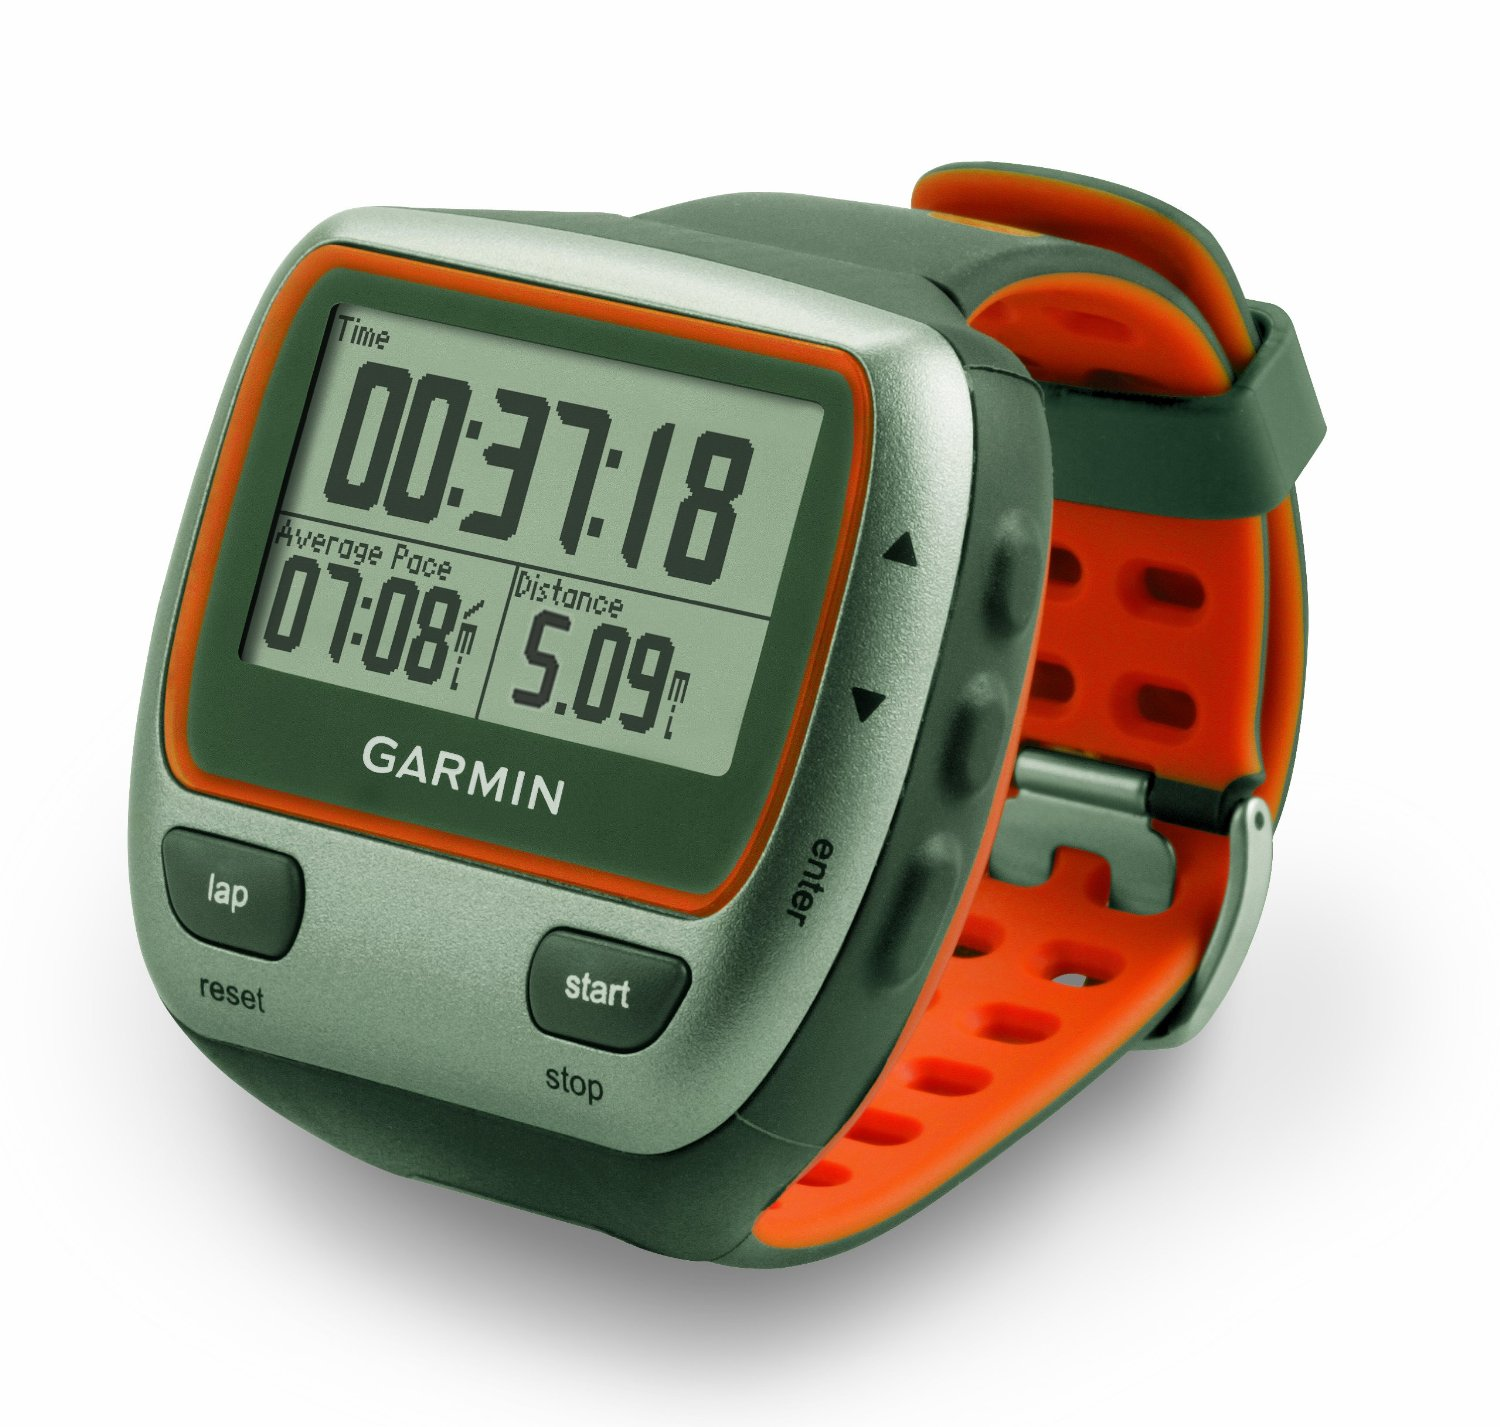 notre test de la montre gps garmin forerunner 310xt. Black Bedroom Furniture Sets. Home Design Ideas